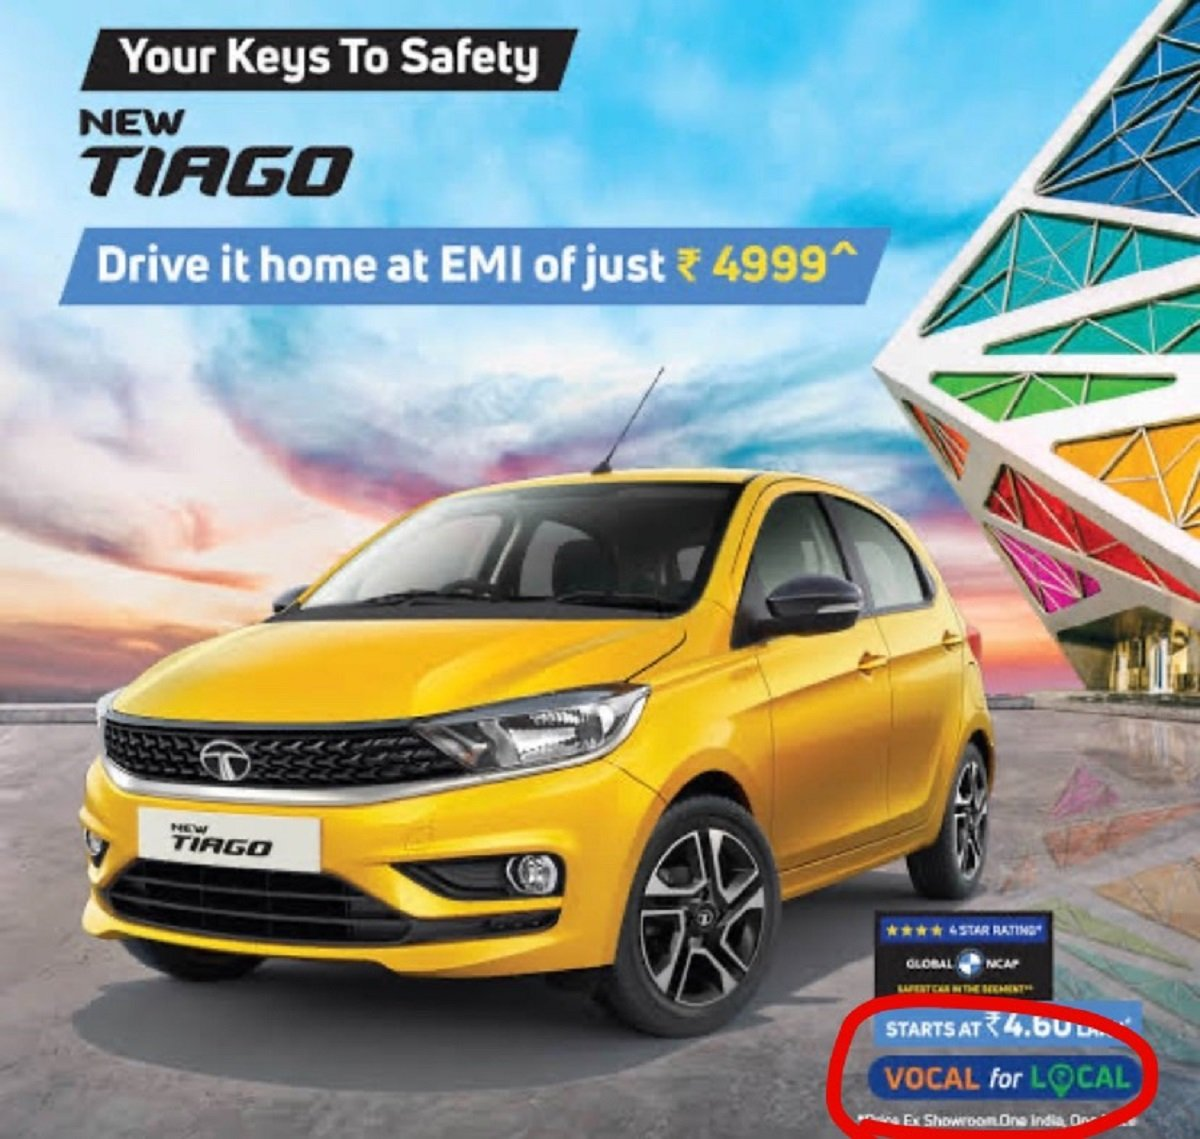 Tata Motors Uses 'Vocal for Local' Appeal to Promote Tiago